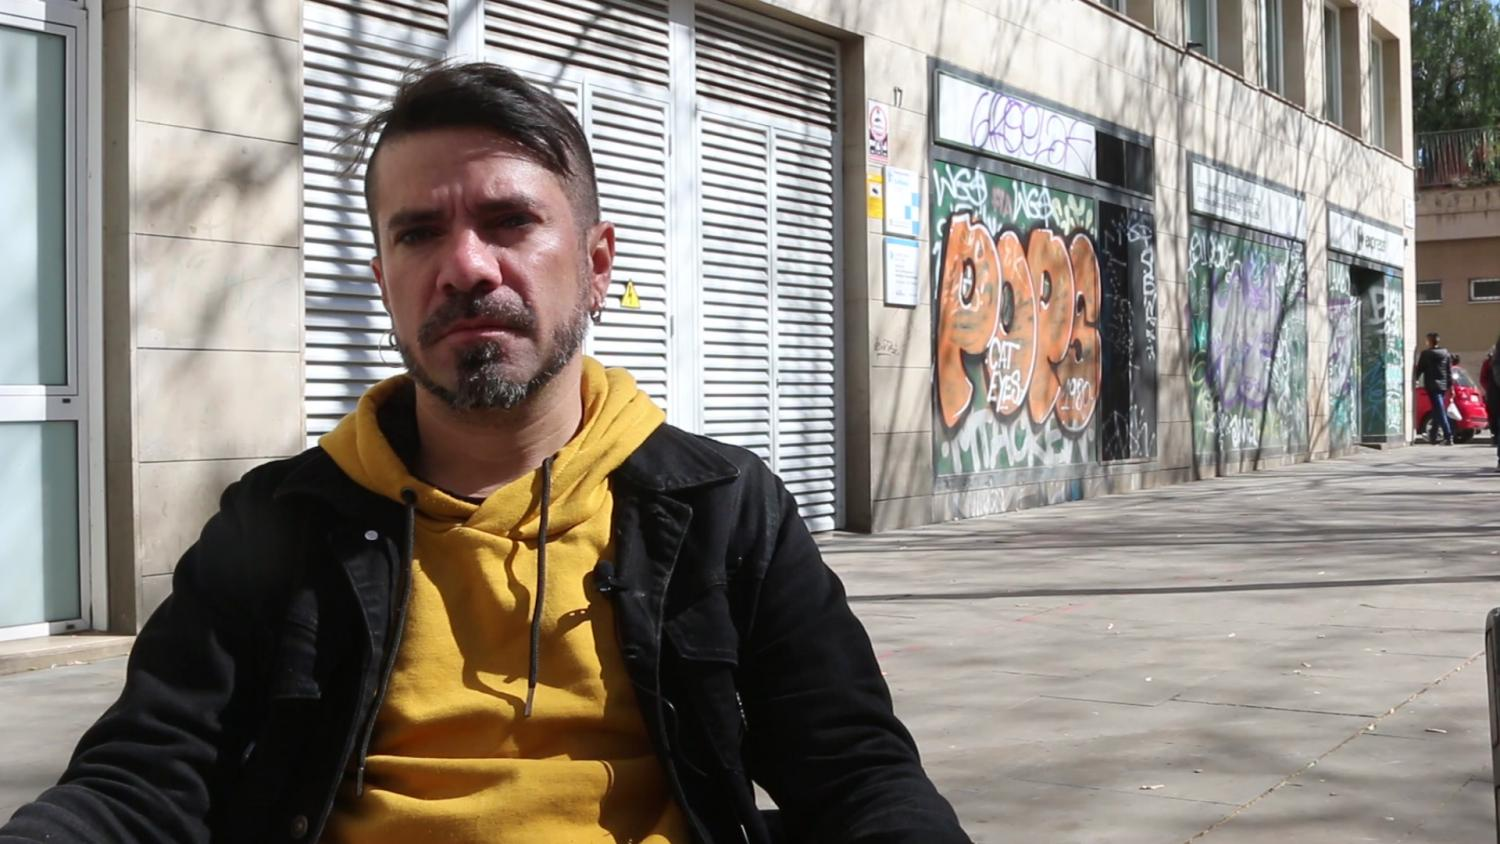 Color photograph of a man in a jacket and hooded sweatshirt. He squints from the bright sun, his face is serious. The photo is taken with an empty sidewalk and closed storefronts covered in graffiti tags in the background.